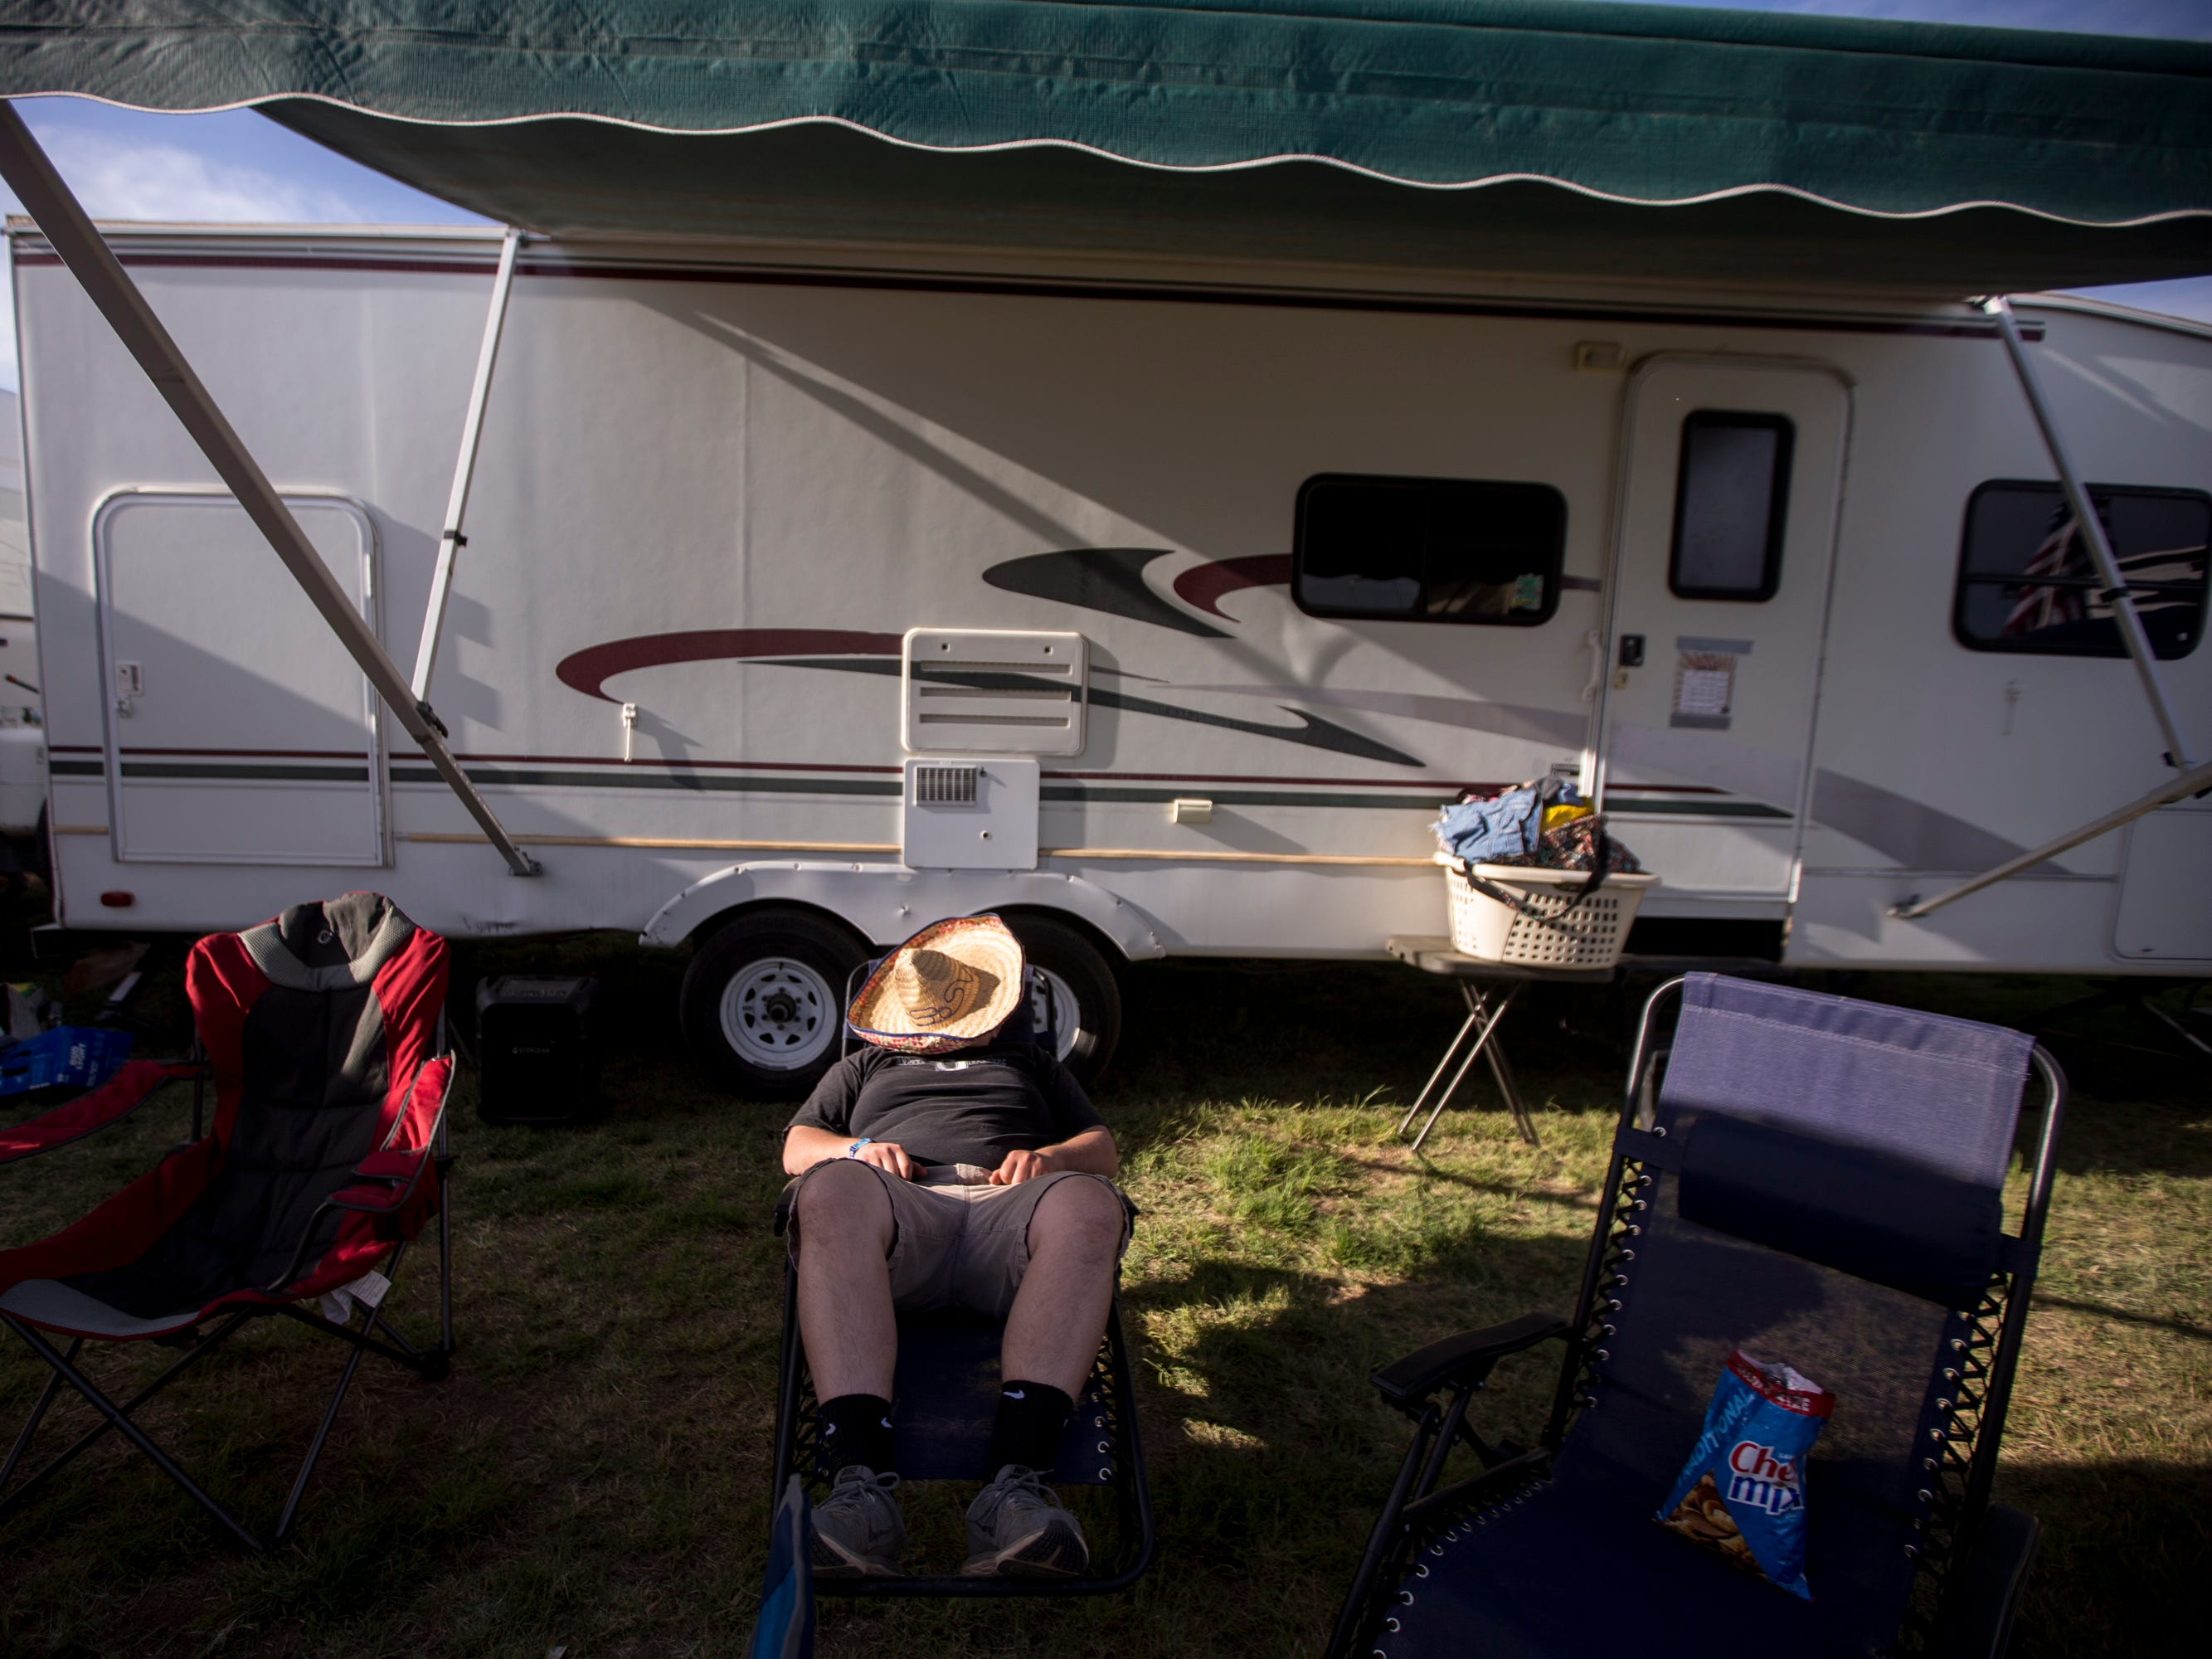 Garrett Flack sleeps at a campsite during Day 1 of Country Thunder Arizona in Florence, Ariz., on Apr. 11, 2019.